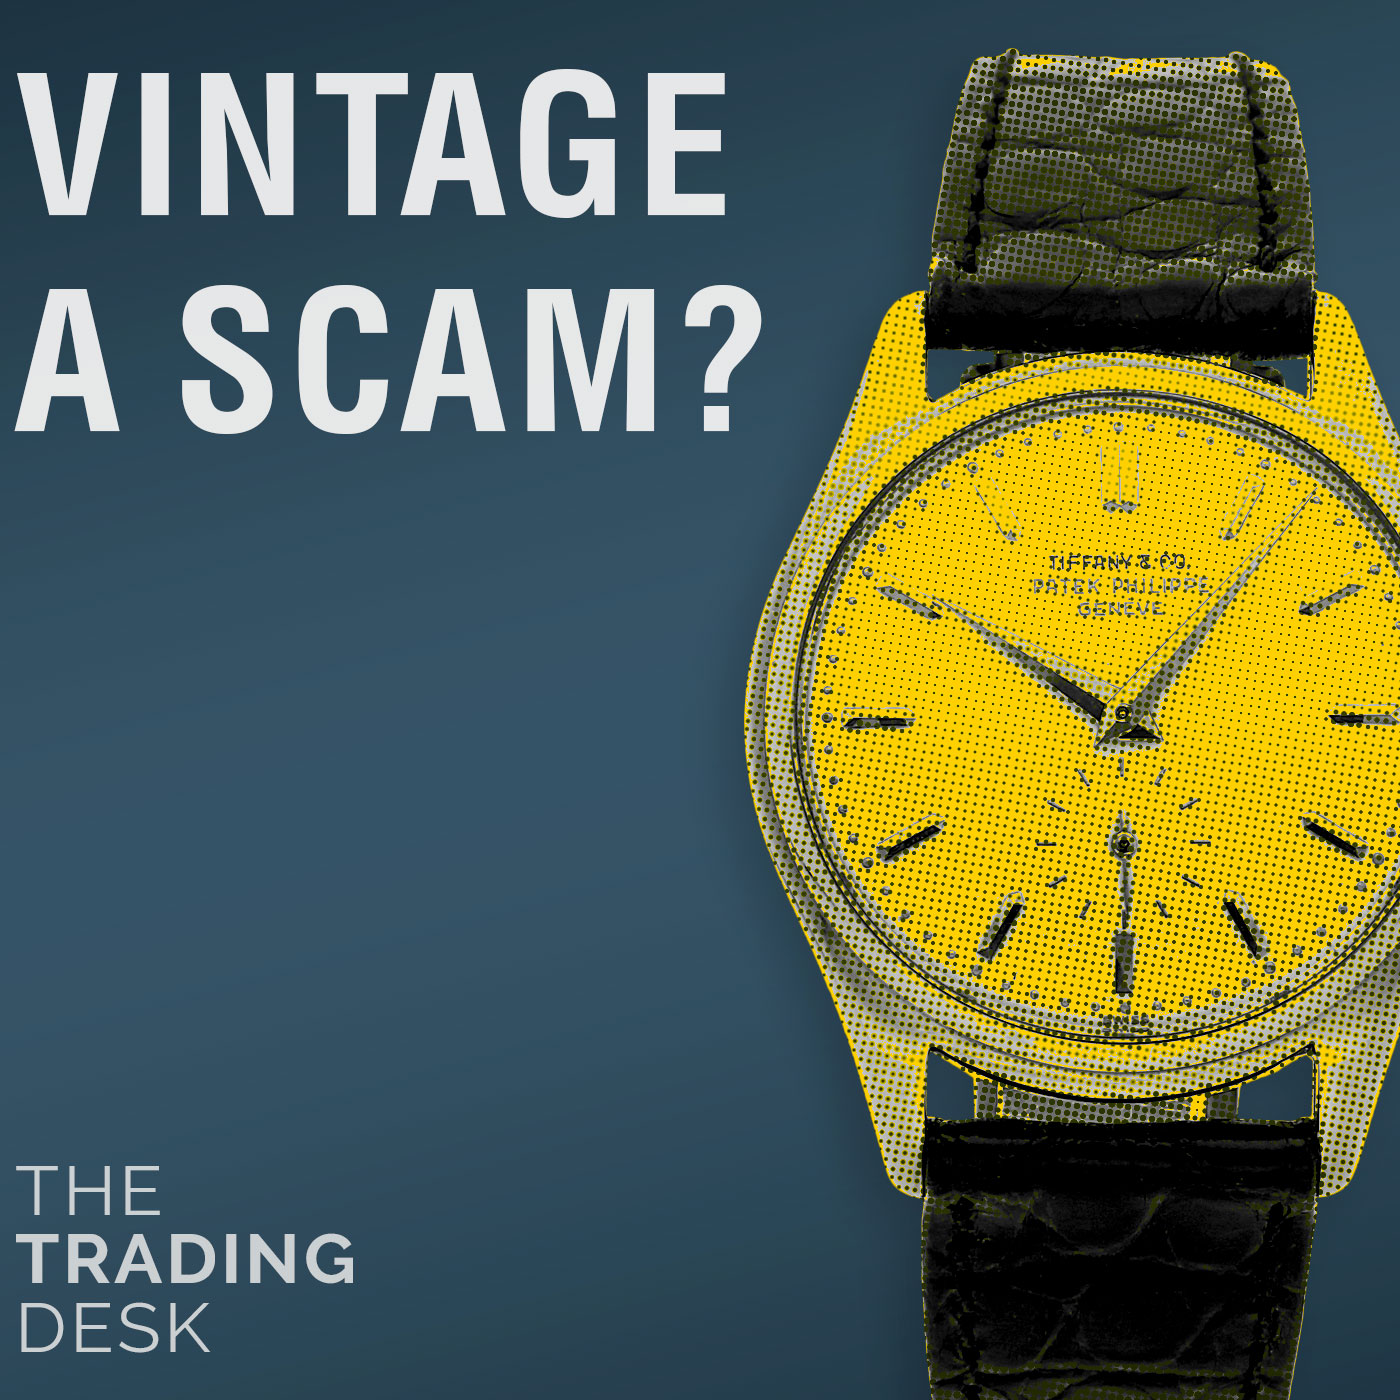 047: Vintage Watches - Good Value or Big Scam?